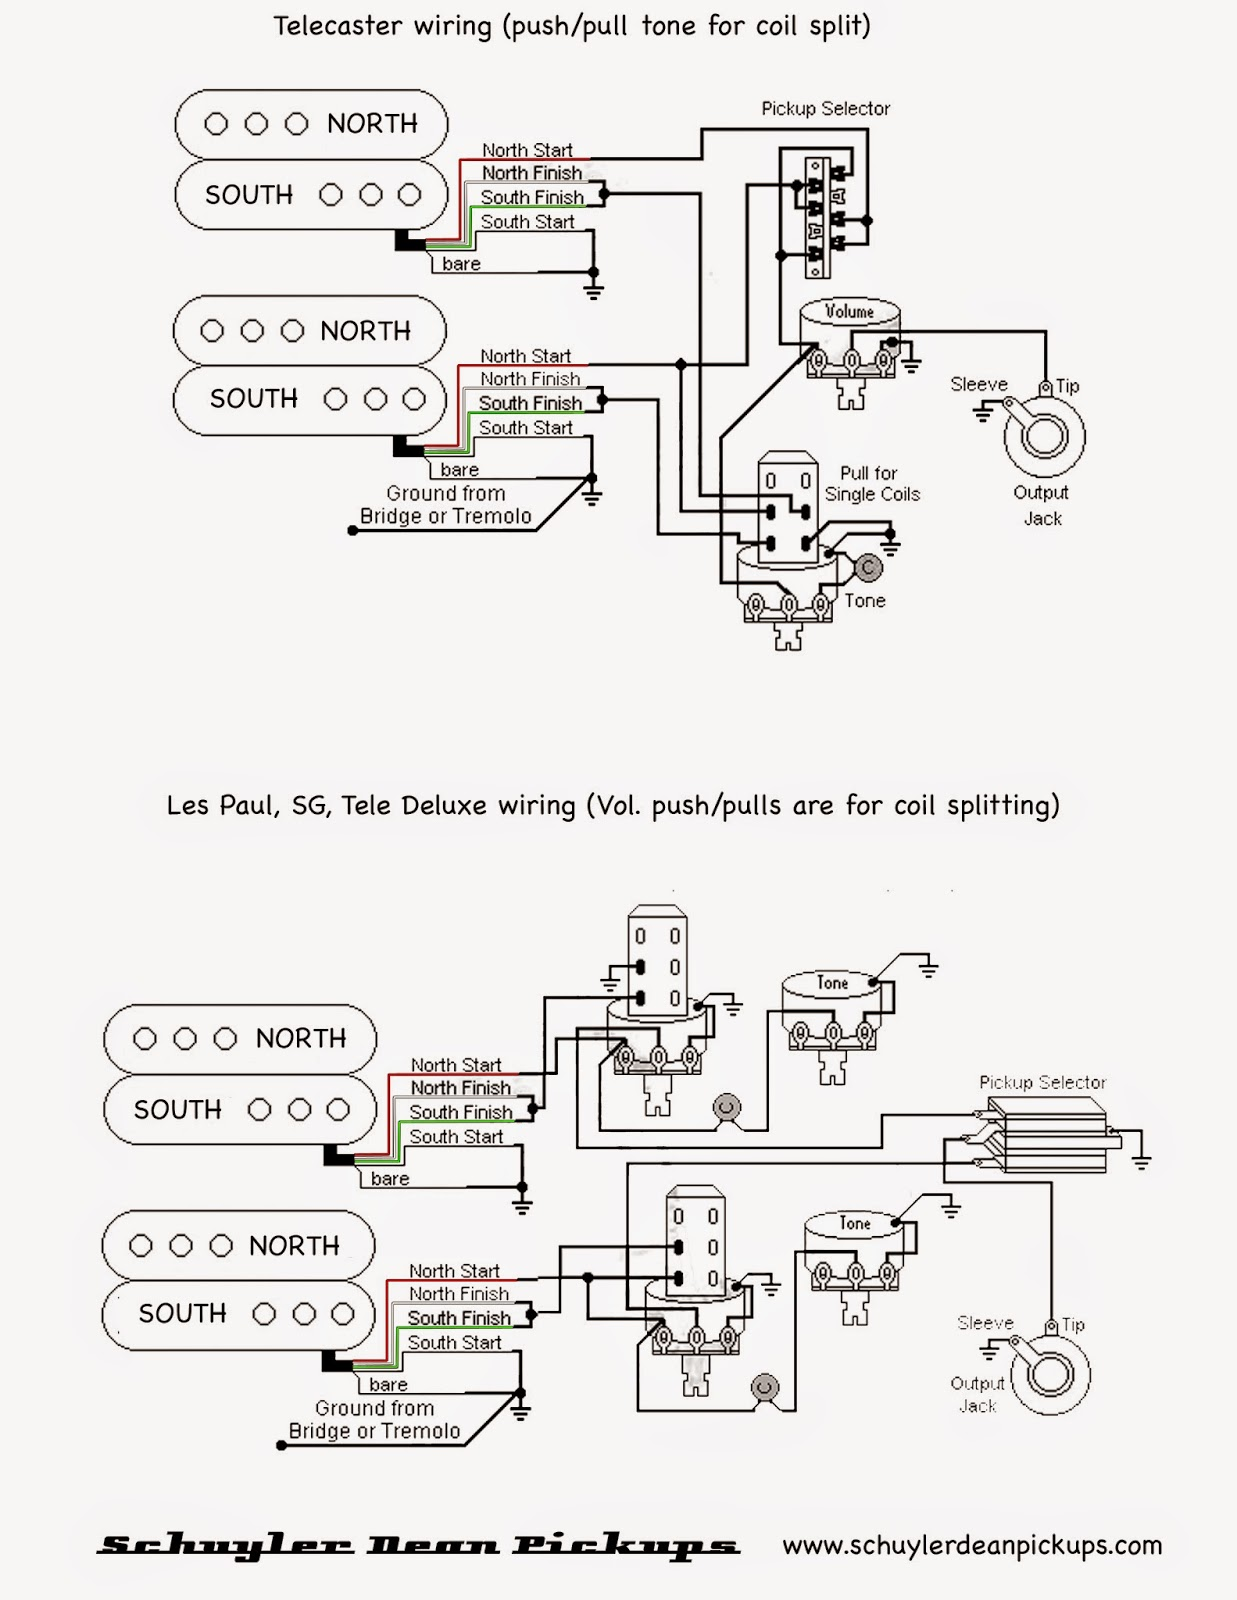 Wiring%2Bdiagram%2BTele LP schuyler dean pickups splitting humbucker coils humbucker coil split wiring diagram at eliteediting.co